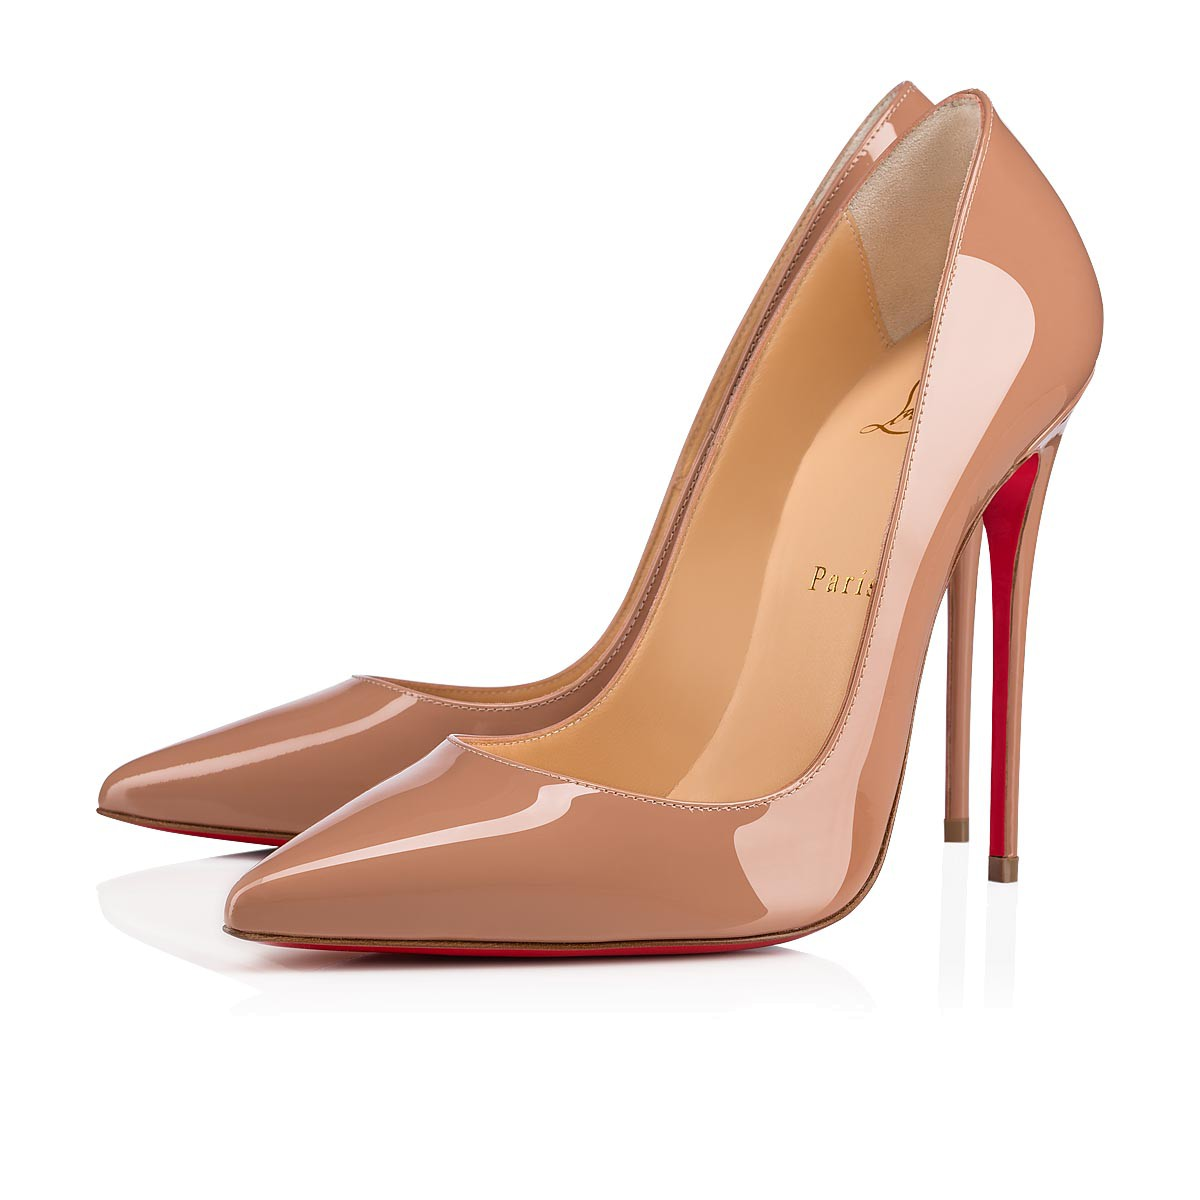 05797b08d98 So Kate 120 Nude Patent Leather - Women Shoes - Christian Louboutin